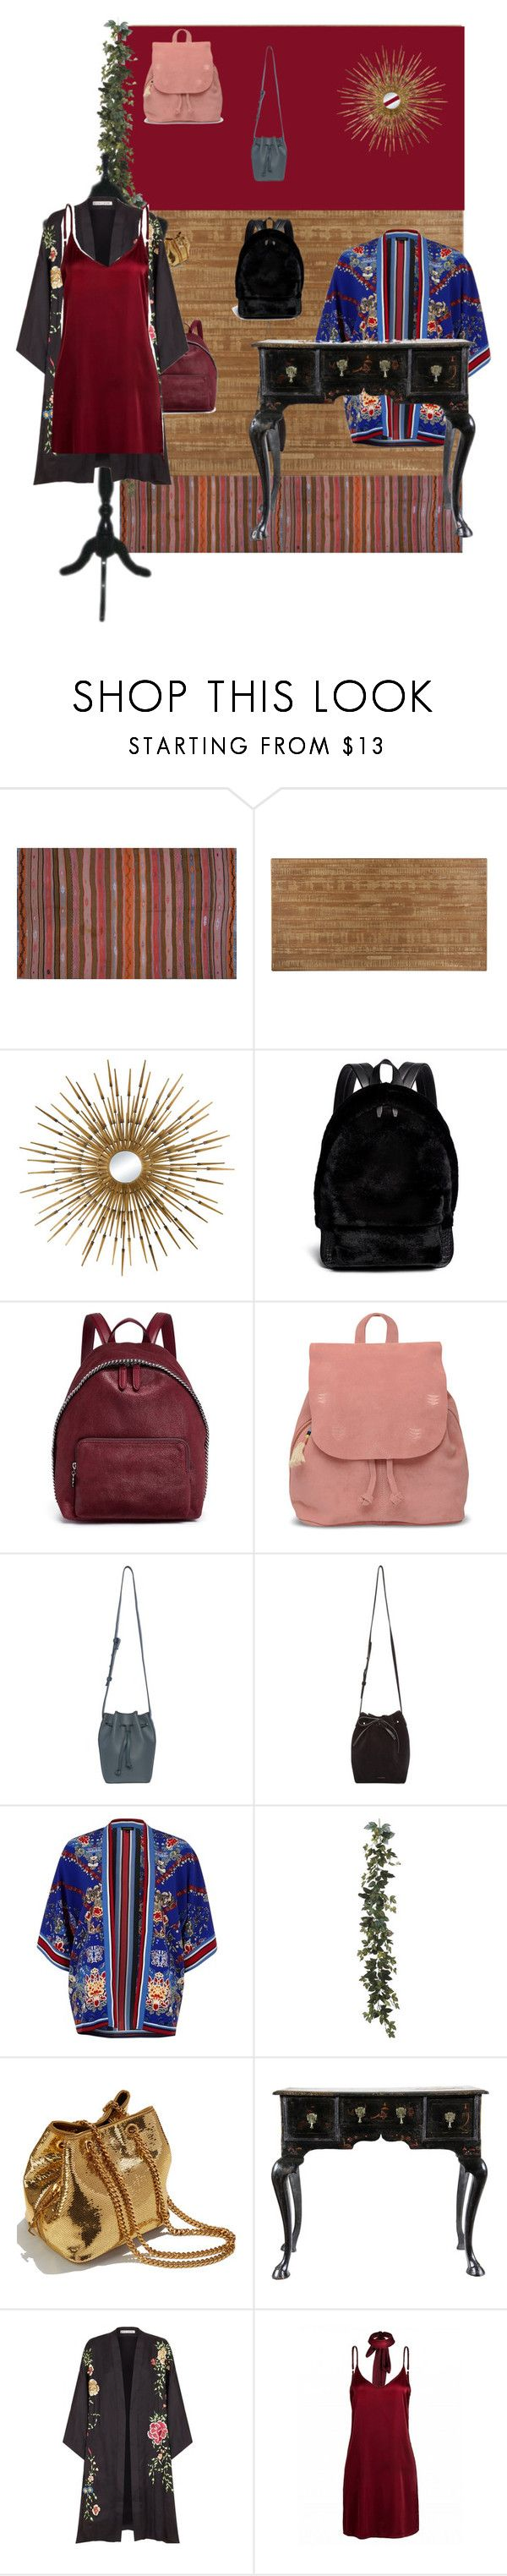 """ngequhntkotr"" by anaunderground on Polyvore featuring moda, Orientalist Home, Lazy Susan, Alexander Wang, STELLA McCARTNEY, TOMS, French Connection, Mansur Gavriel, River Island e Yves Saint Laurent"